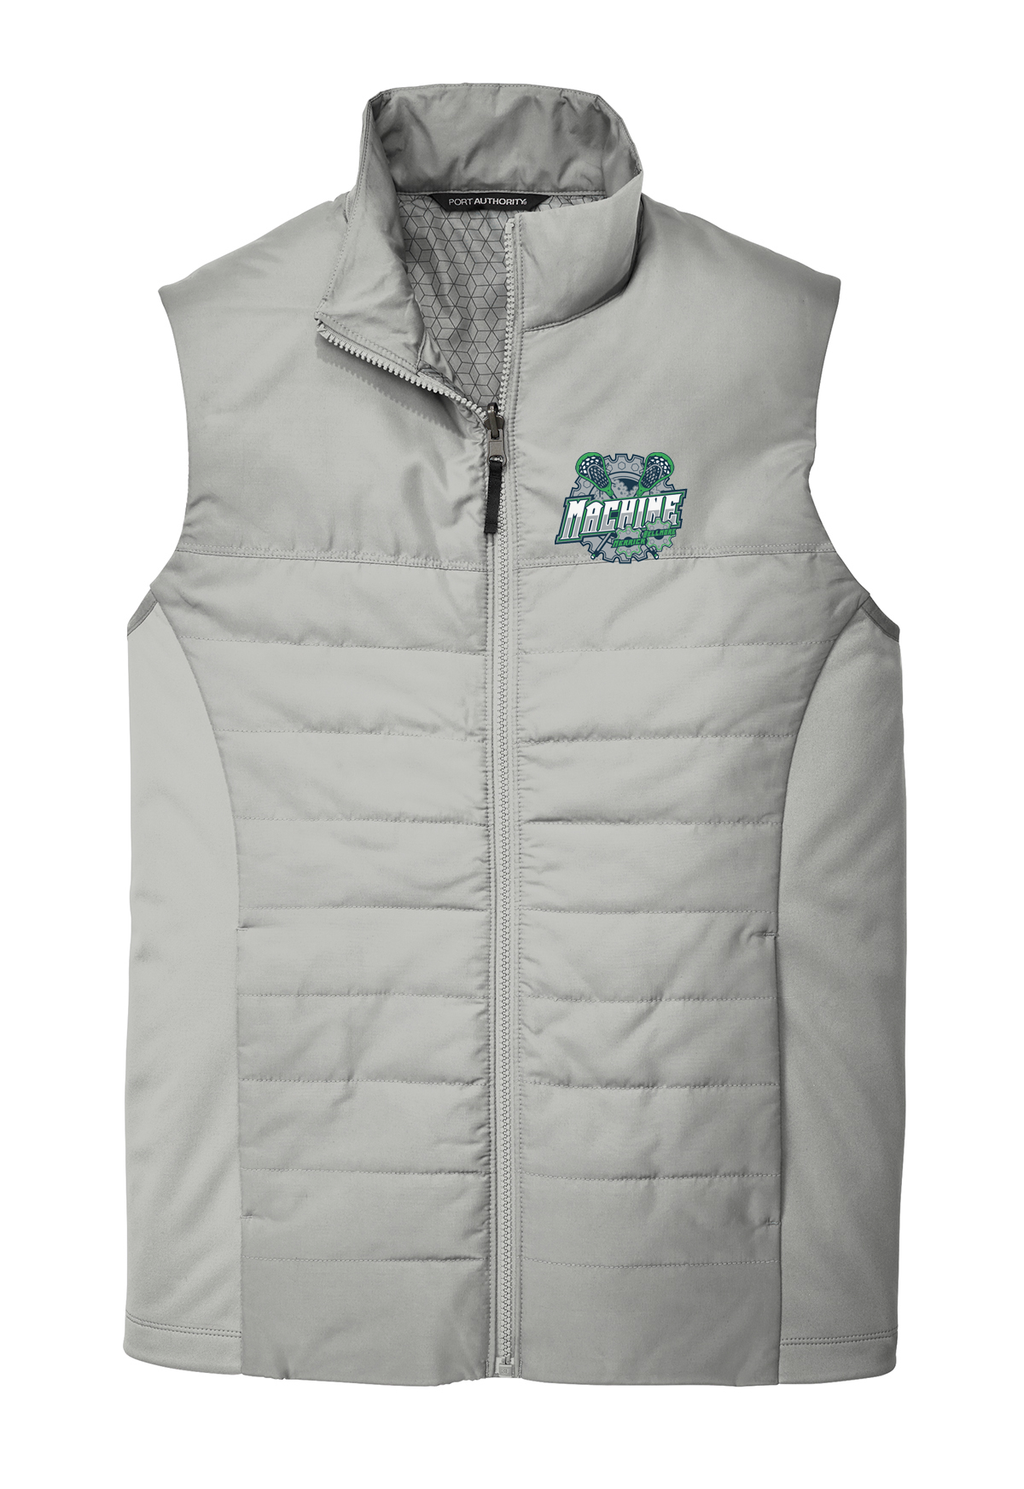 Merrick-Bellmore Men's Vest